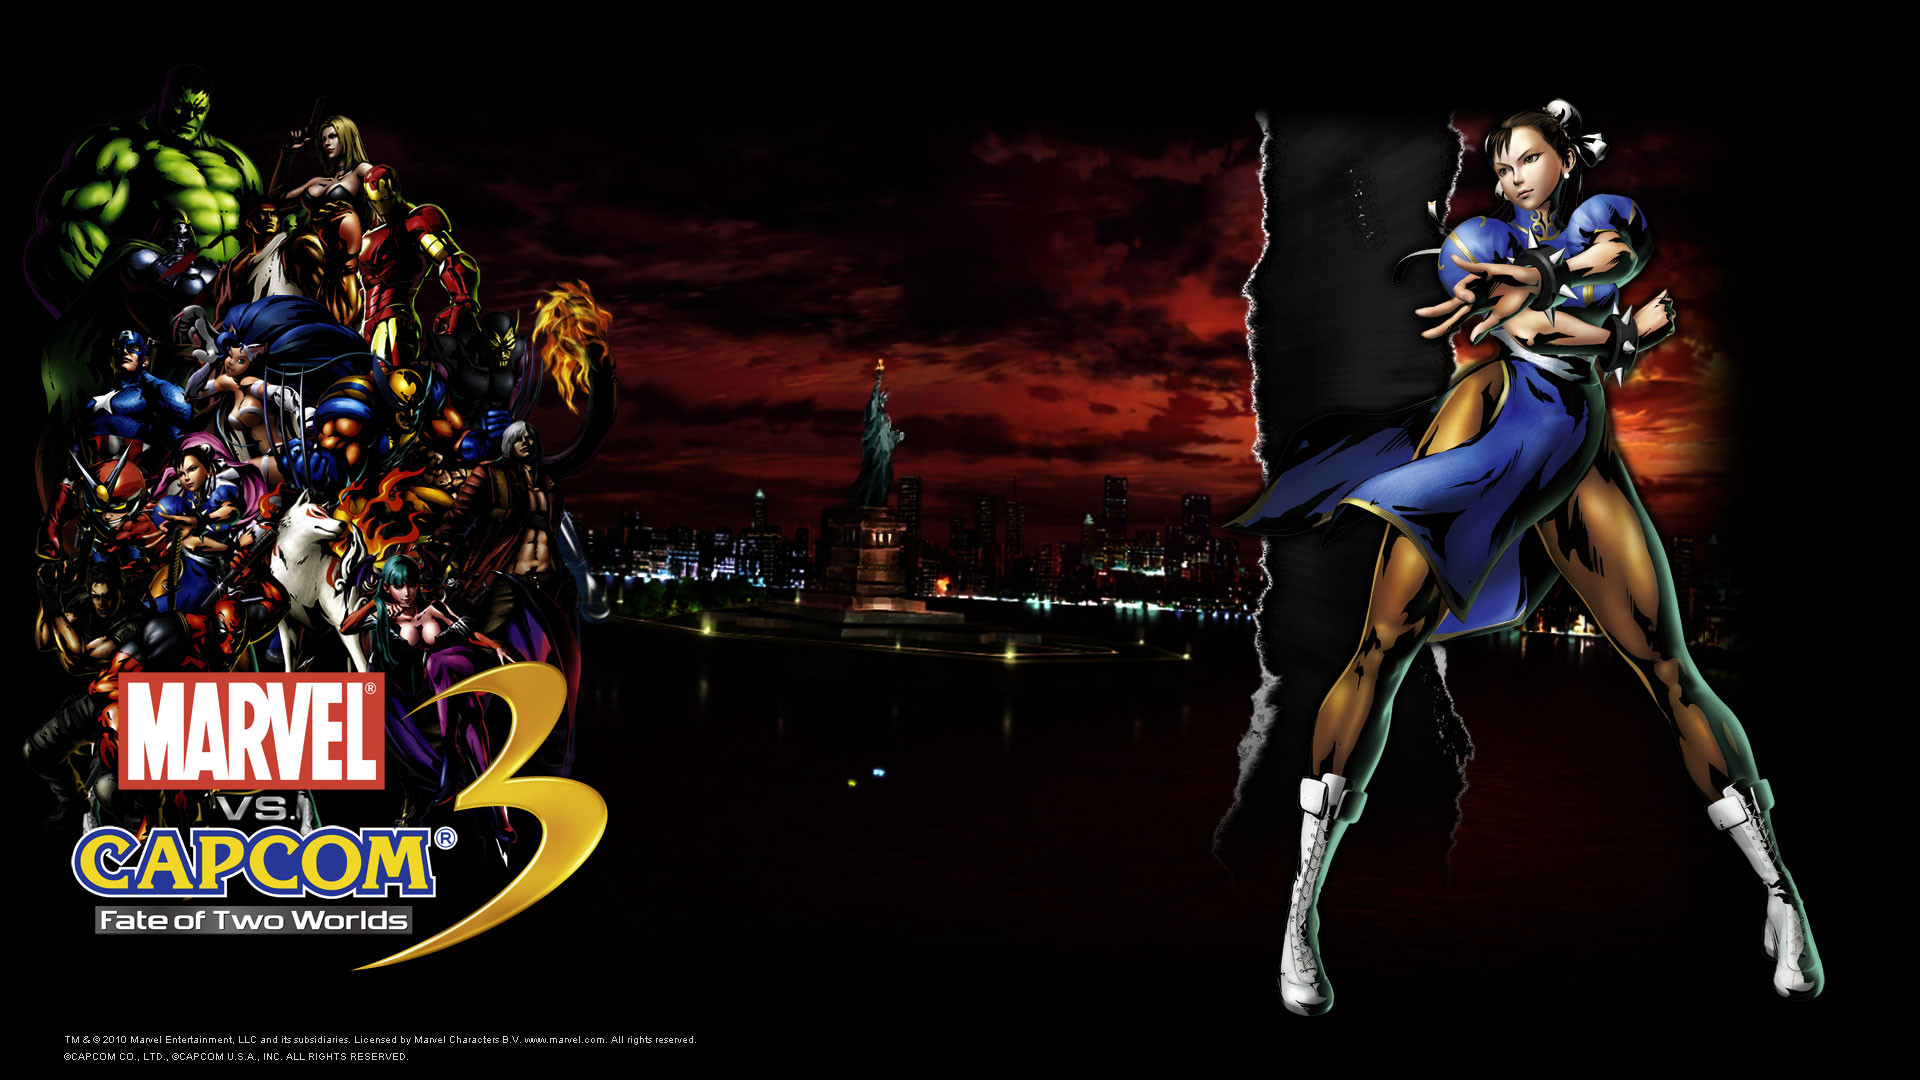 Marvel Vs Capcom 3 wallpaper – Chun-Li.jpg